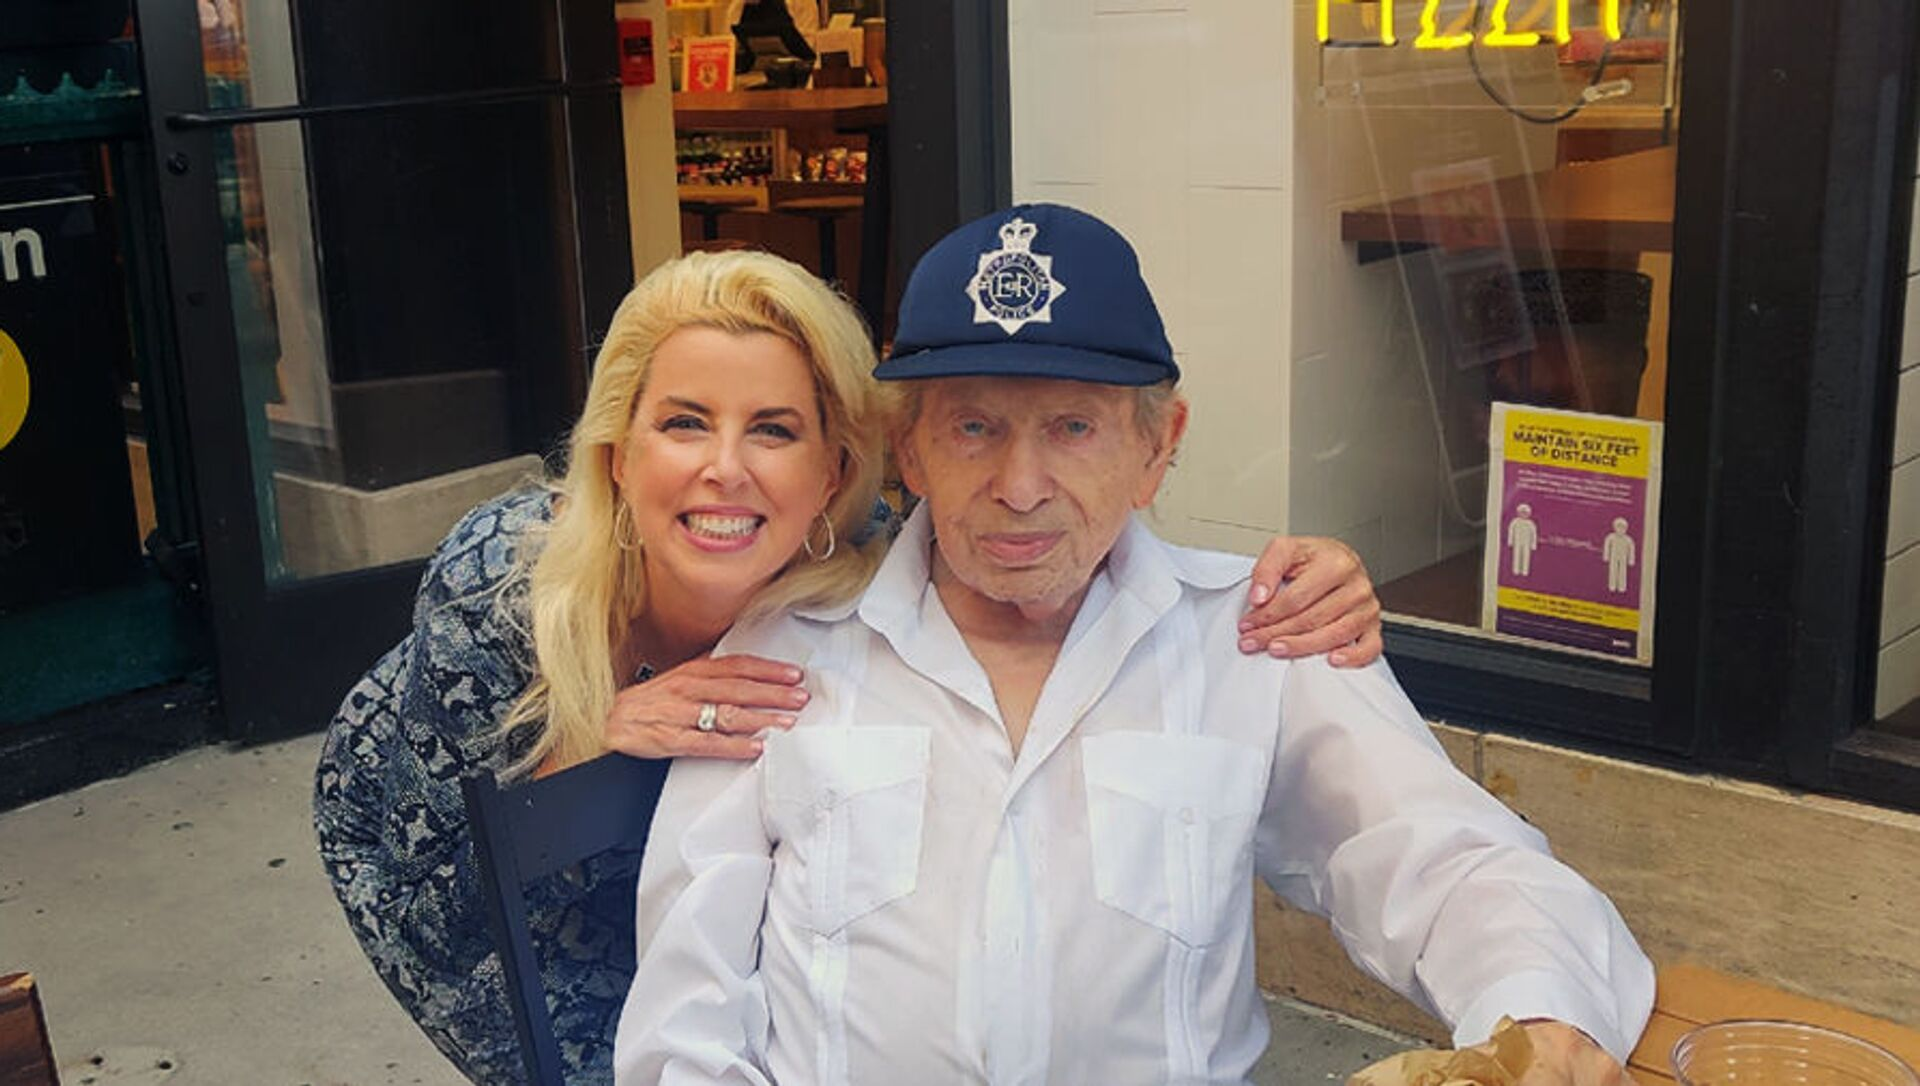 Comedian Jackie Mason (right) with television news anchor Rita Cosby (left). - Sputnik International, 1920, 25.07.2021